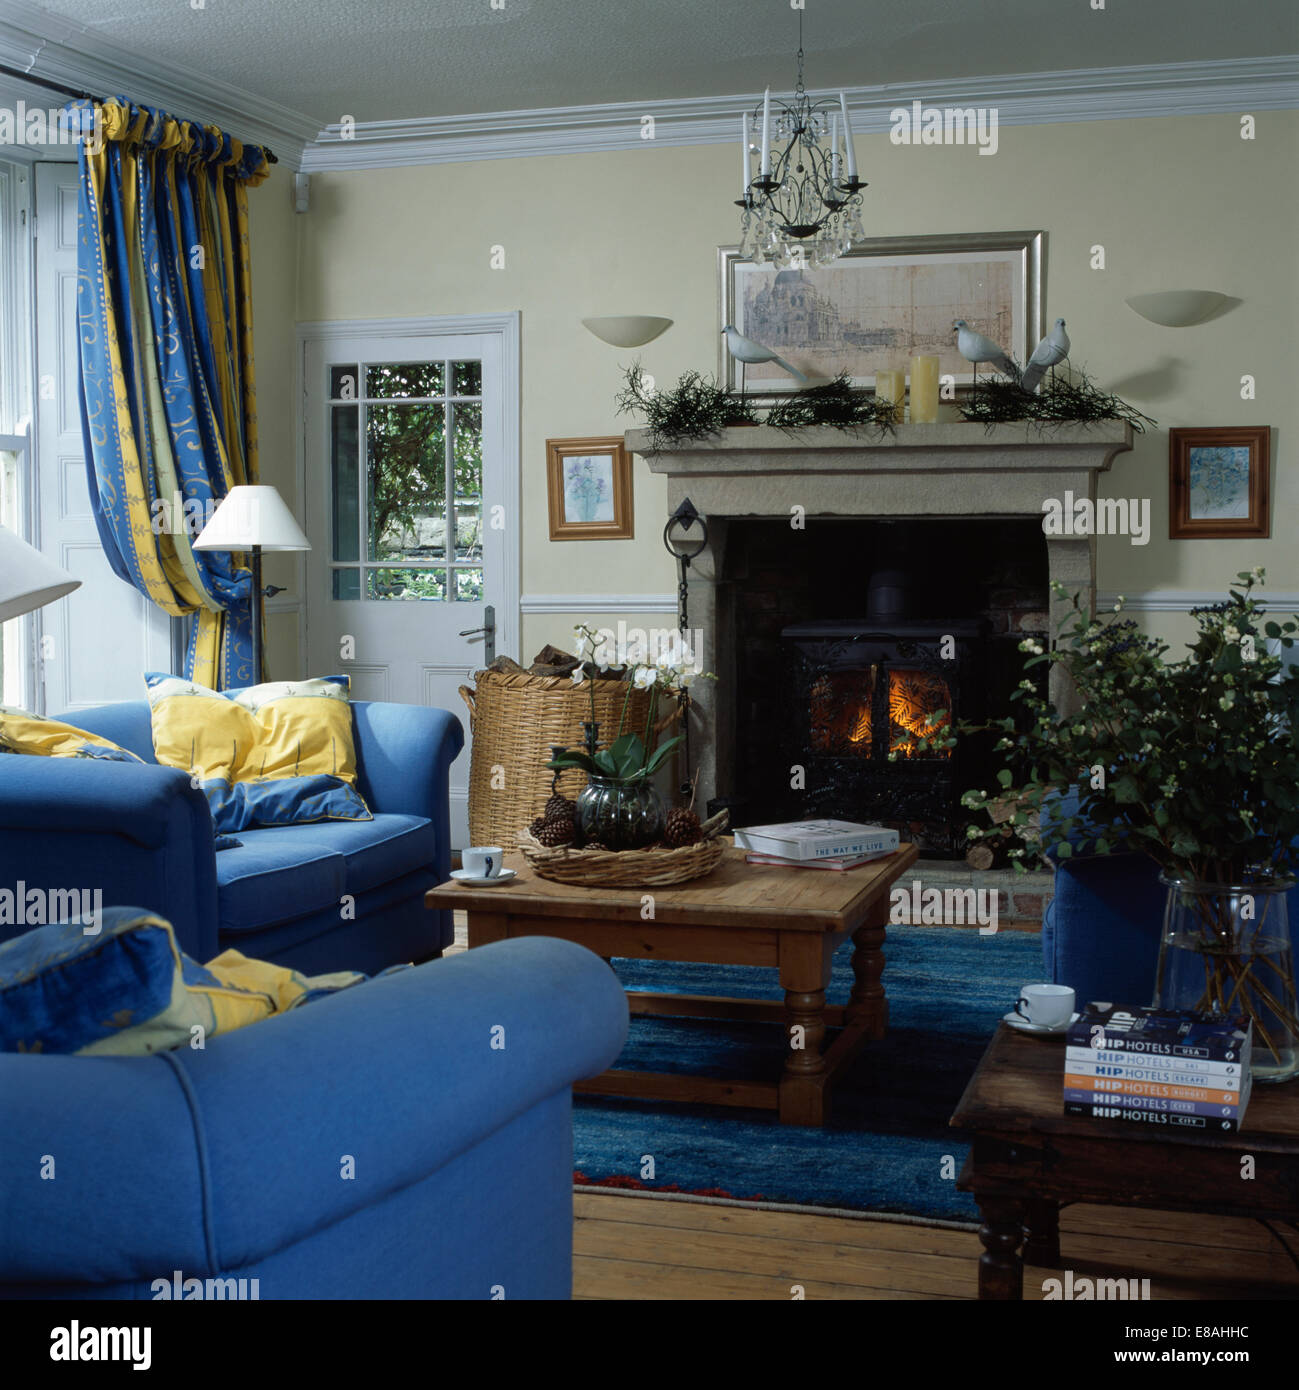 Blue Sofas In Country Living Room With Wood-burning Stove